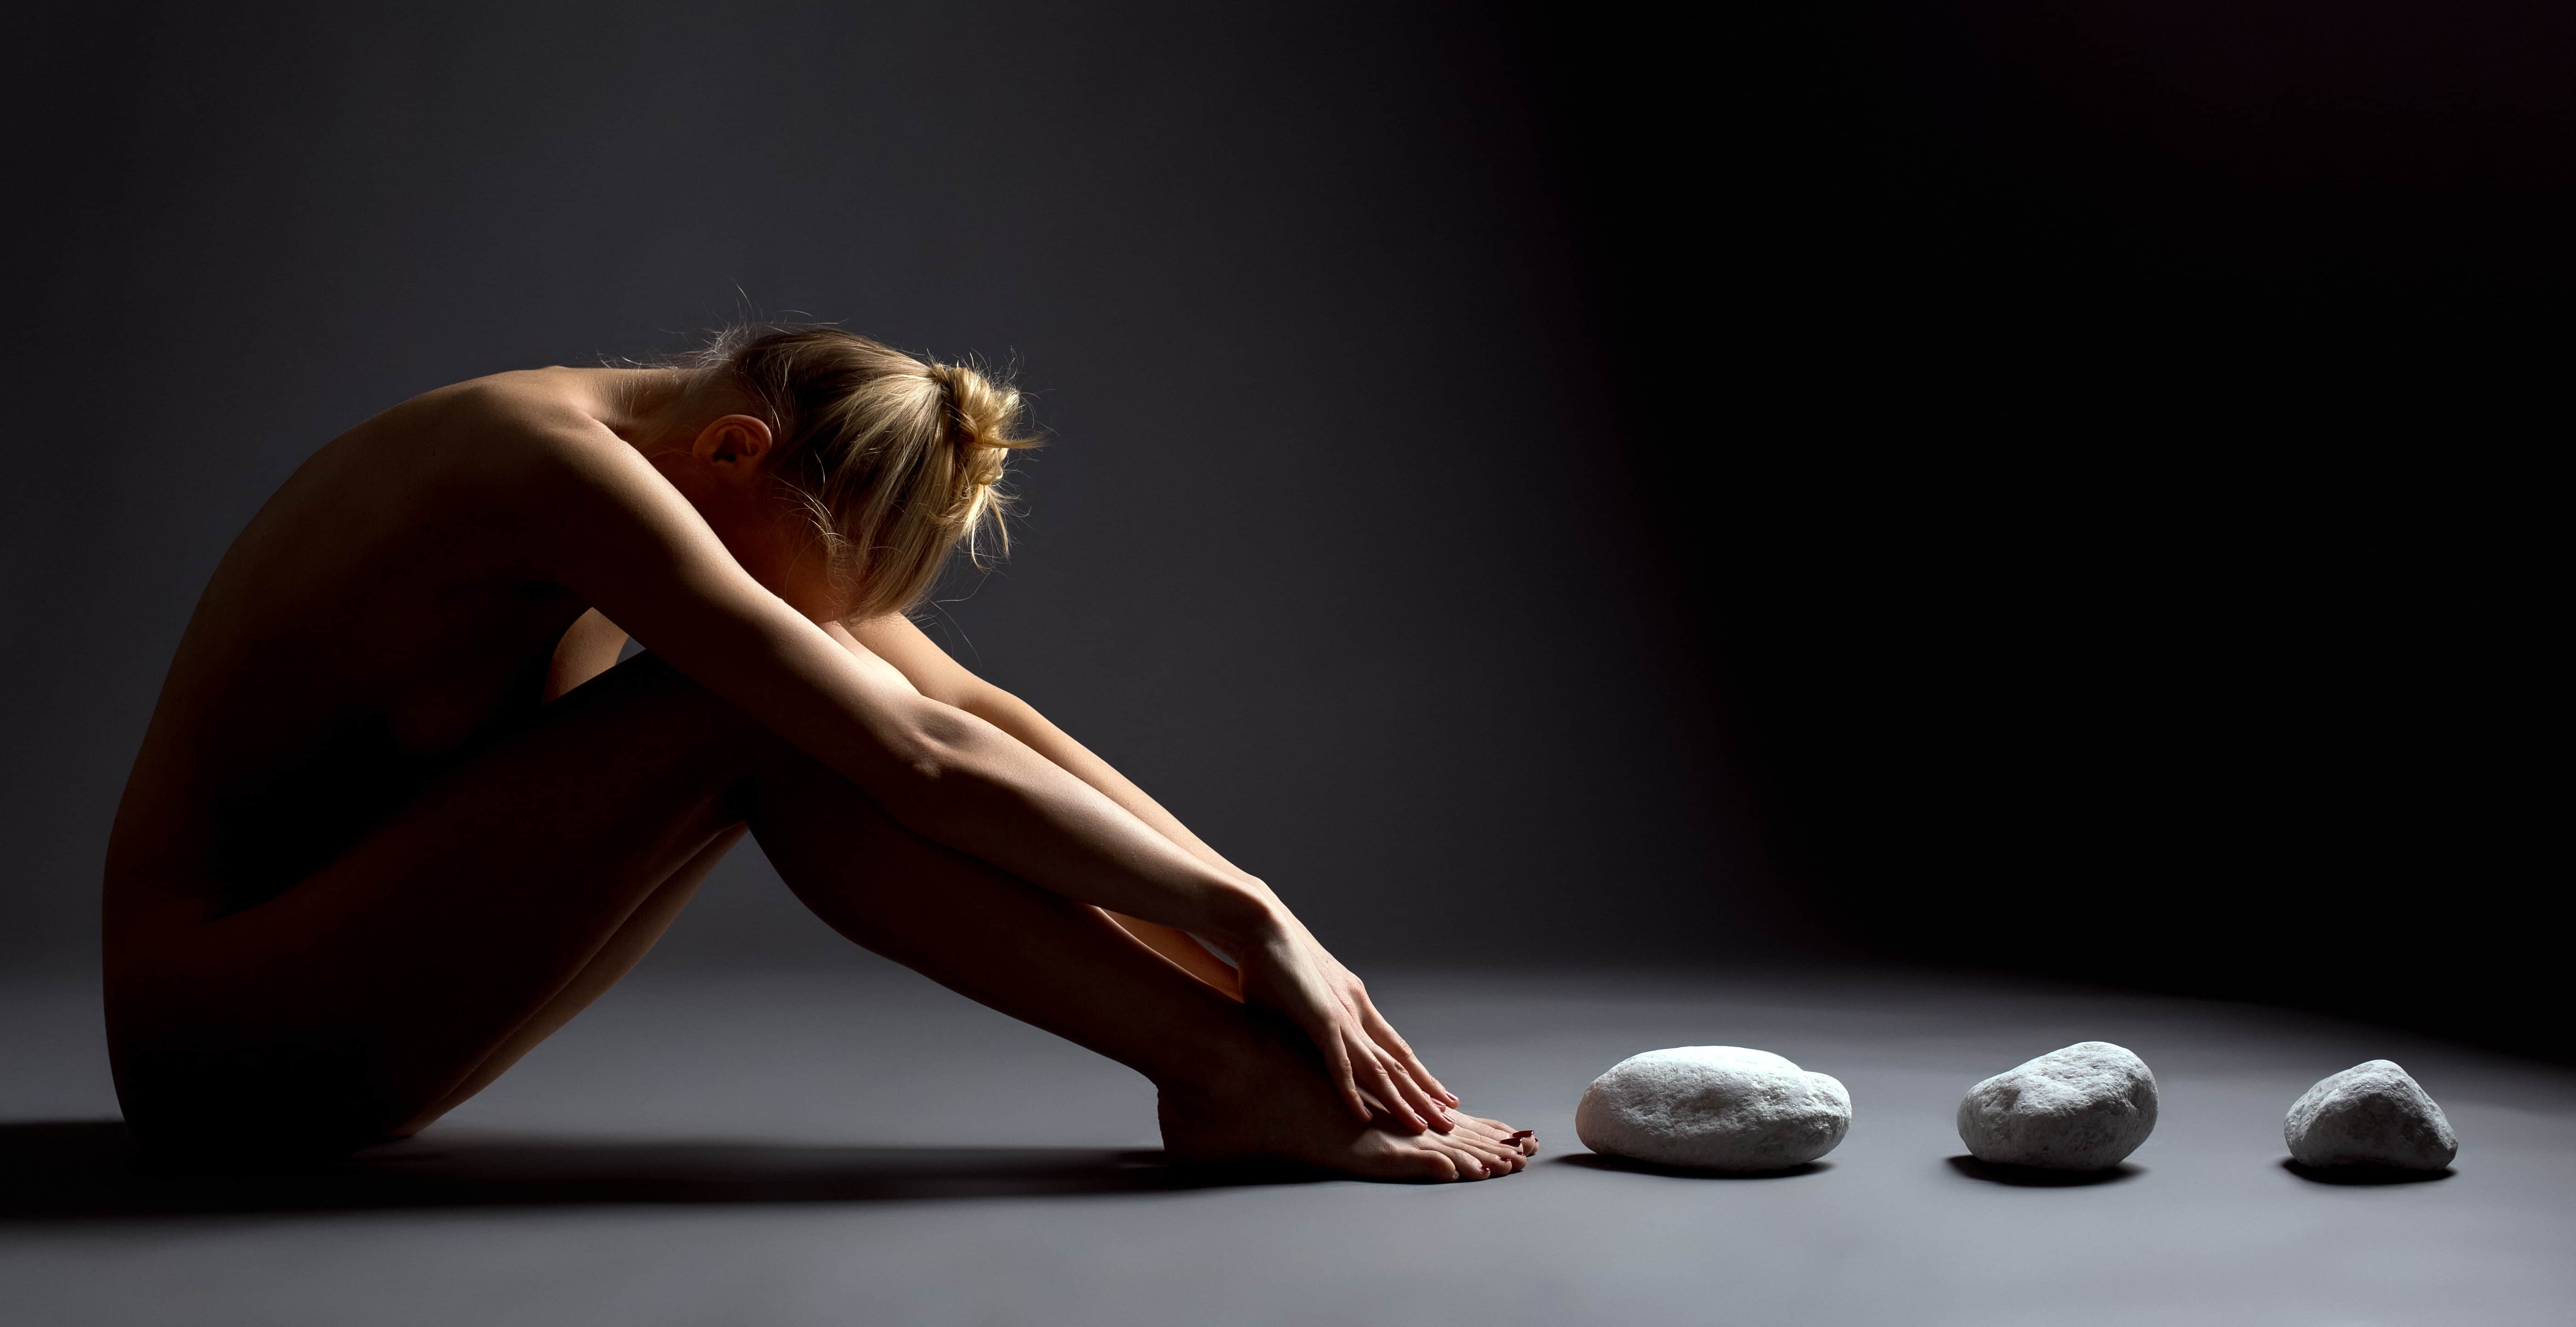 Shot of nude female telekinetic posing with stones